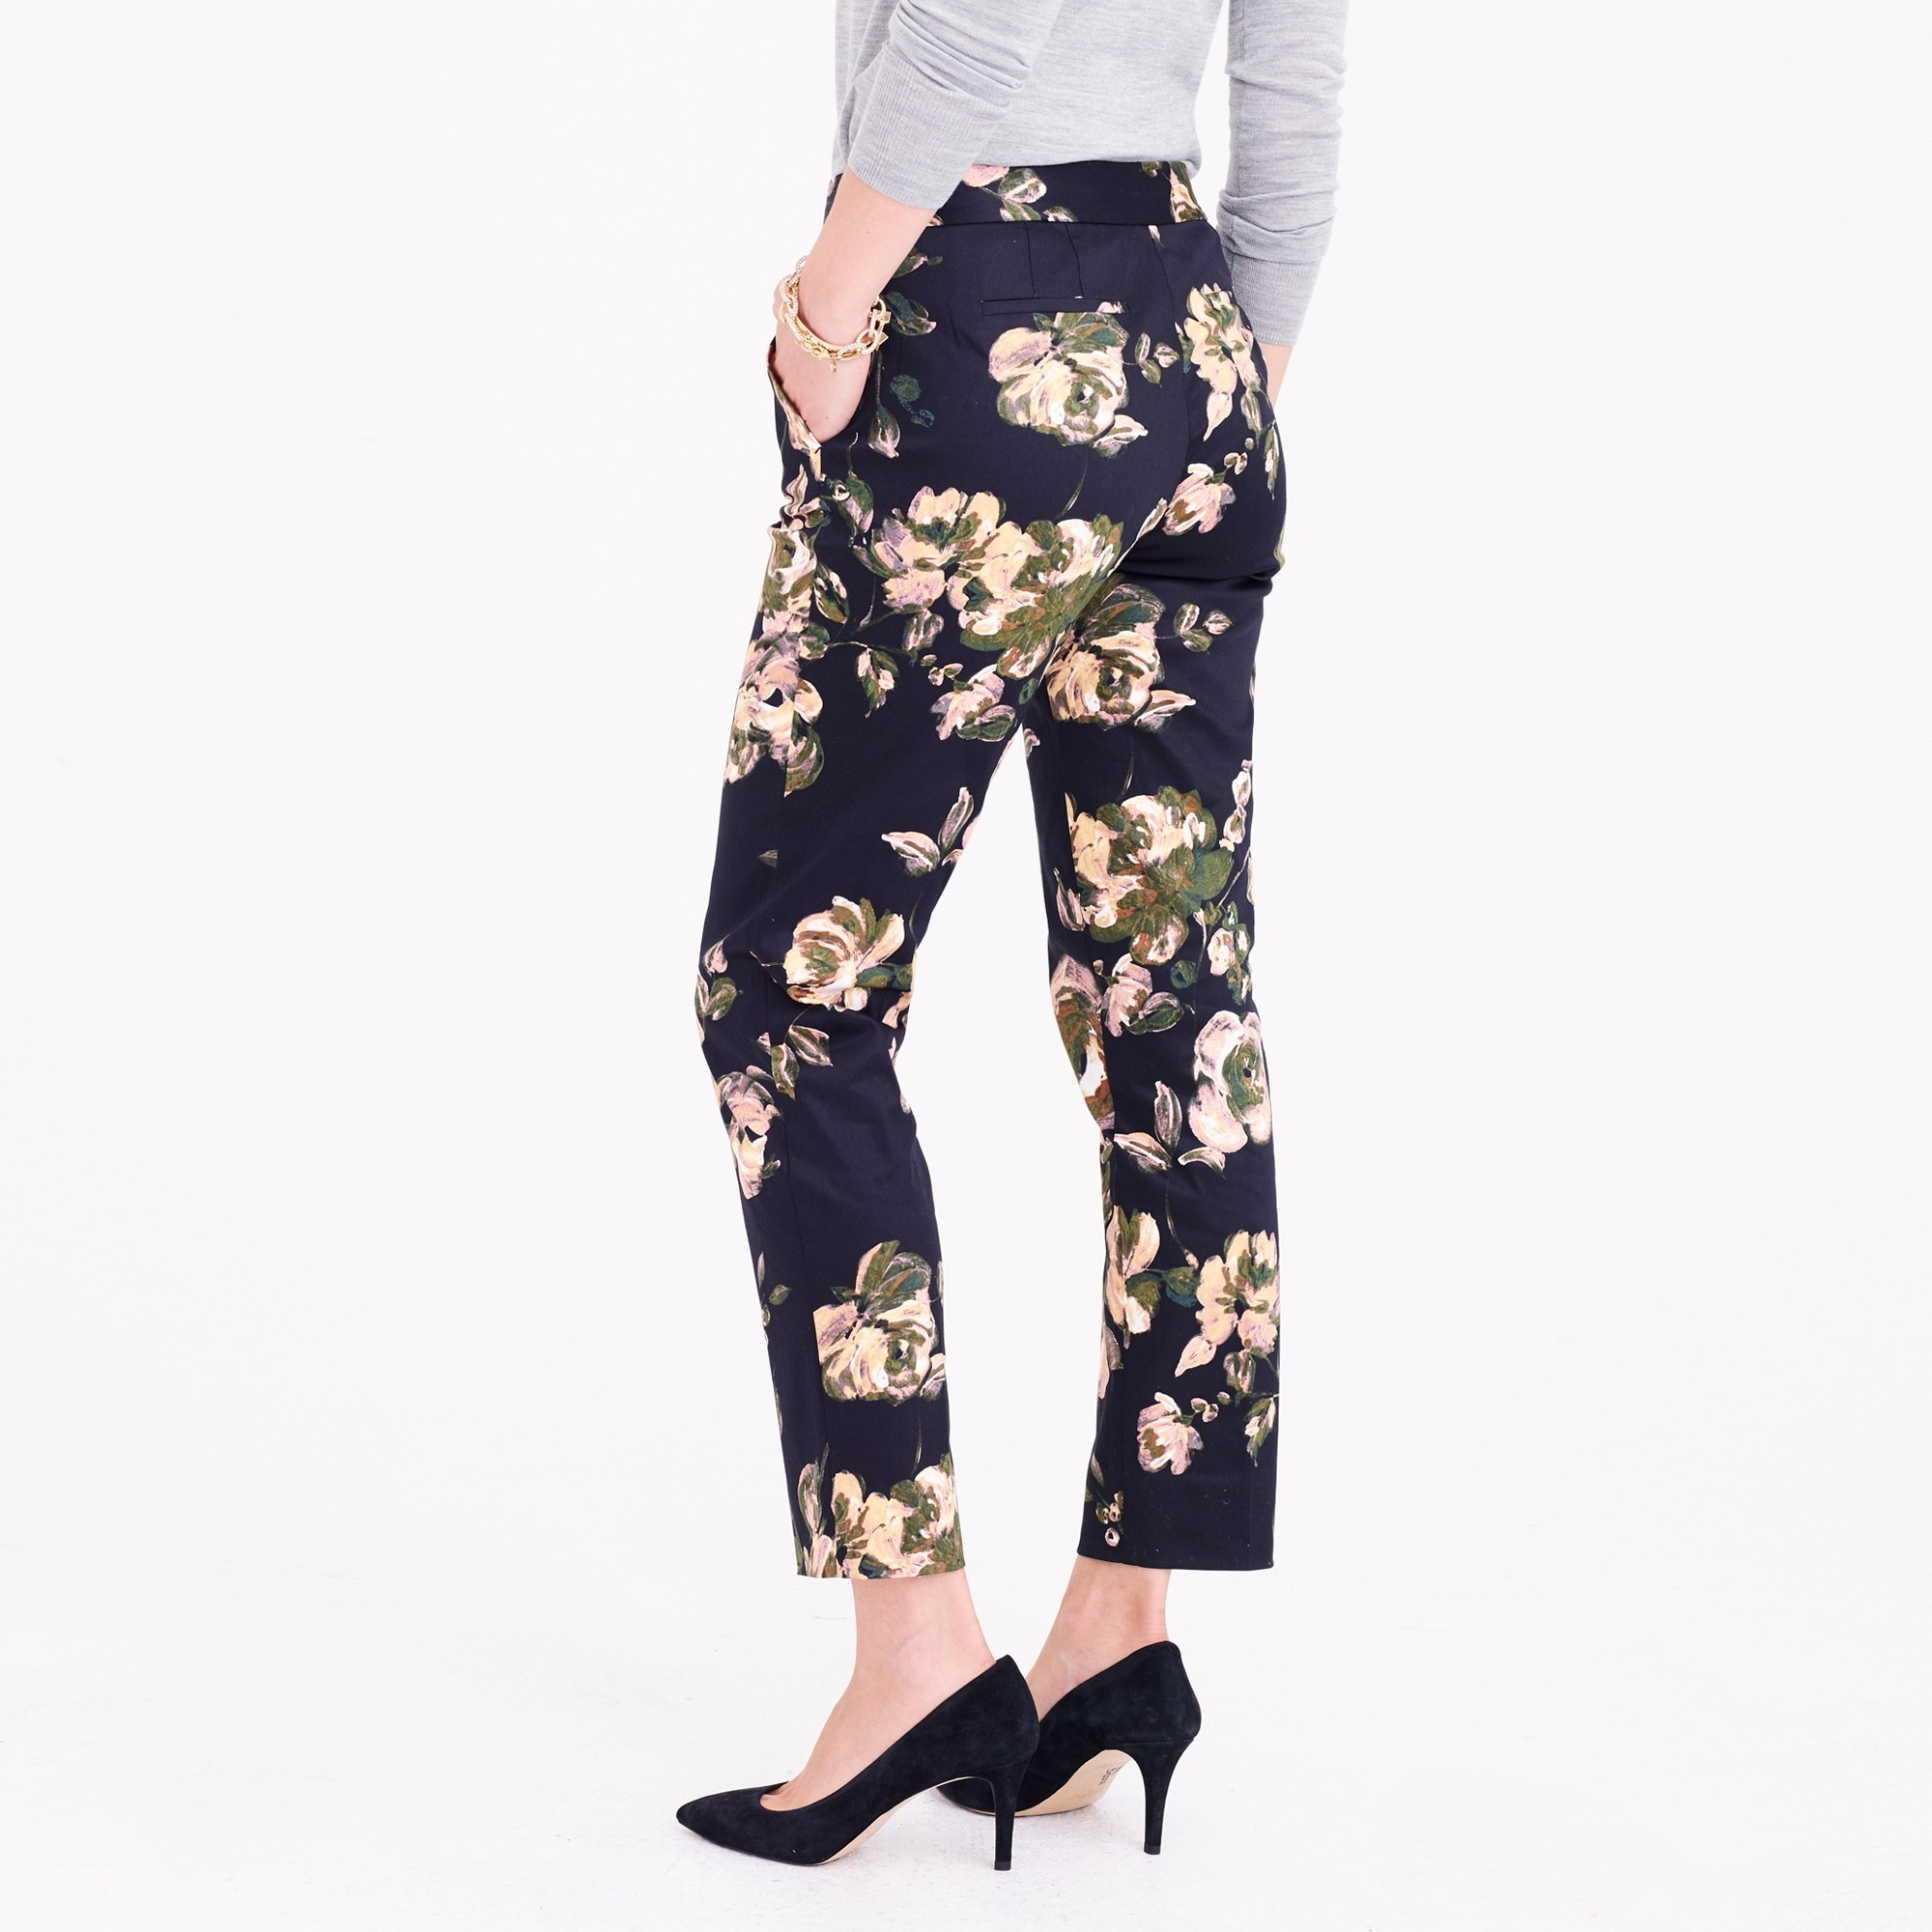 Image 3 for Slim crop printed pant